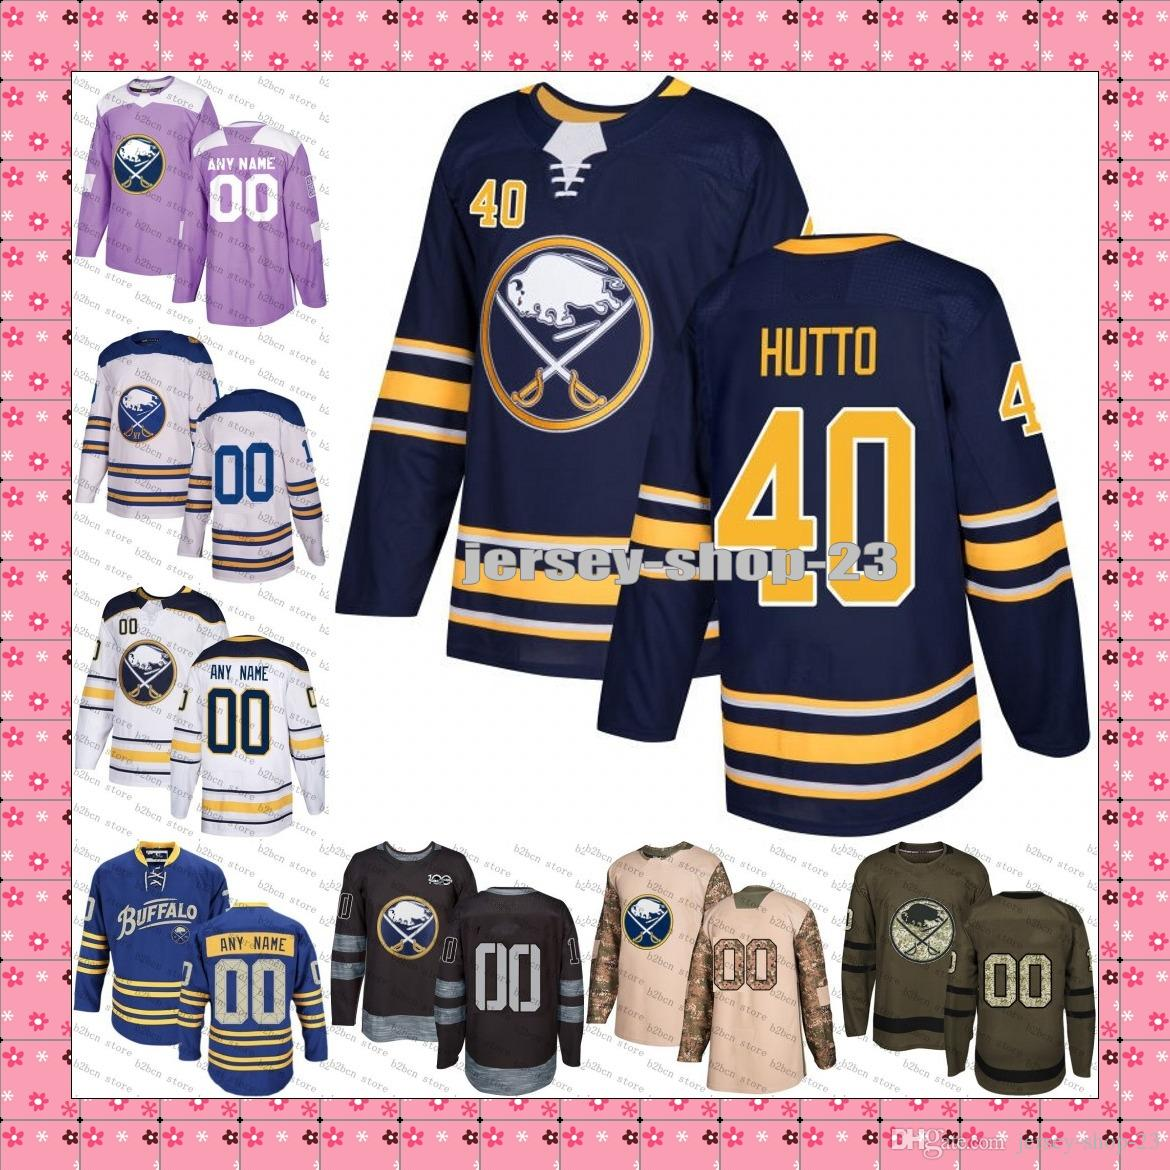 separation shoes efc52 fdf8b 2018 New Buffalo Sabres Mens 40 Carter Hutton Royal Blue navy White green  purple ice Hockey Jersey Stitched S-3XL